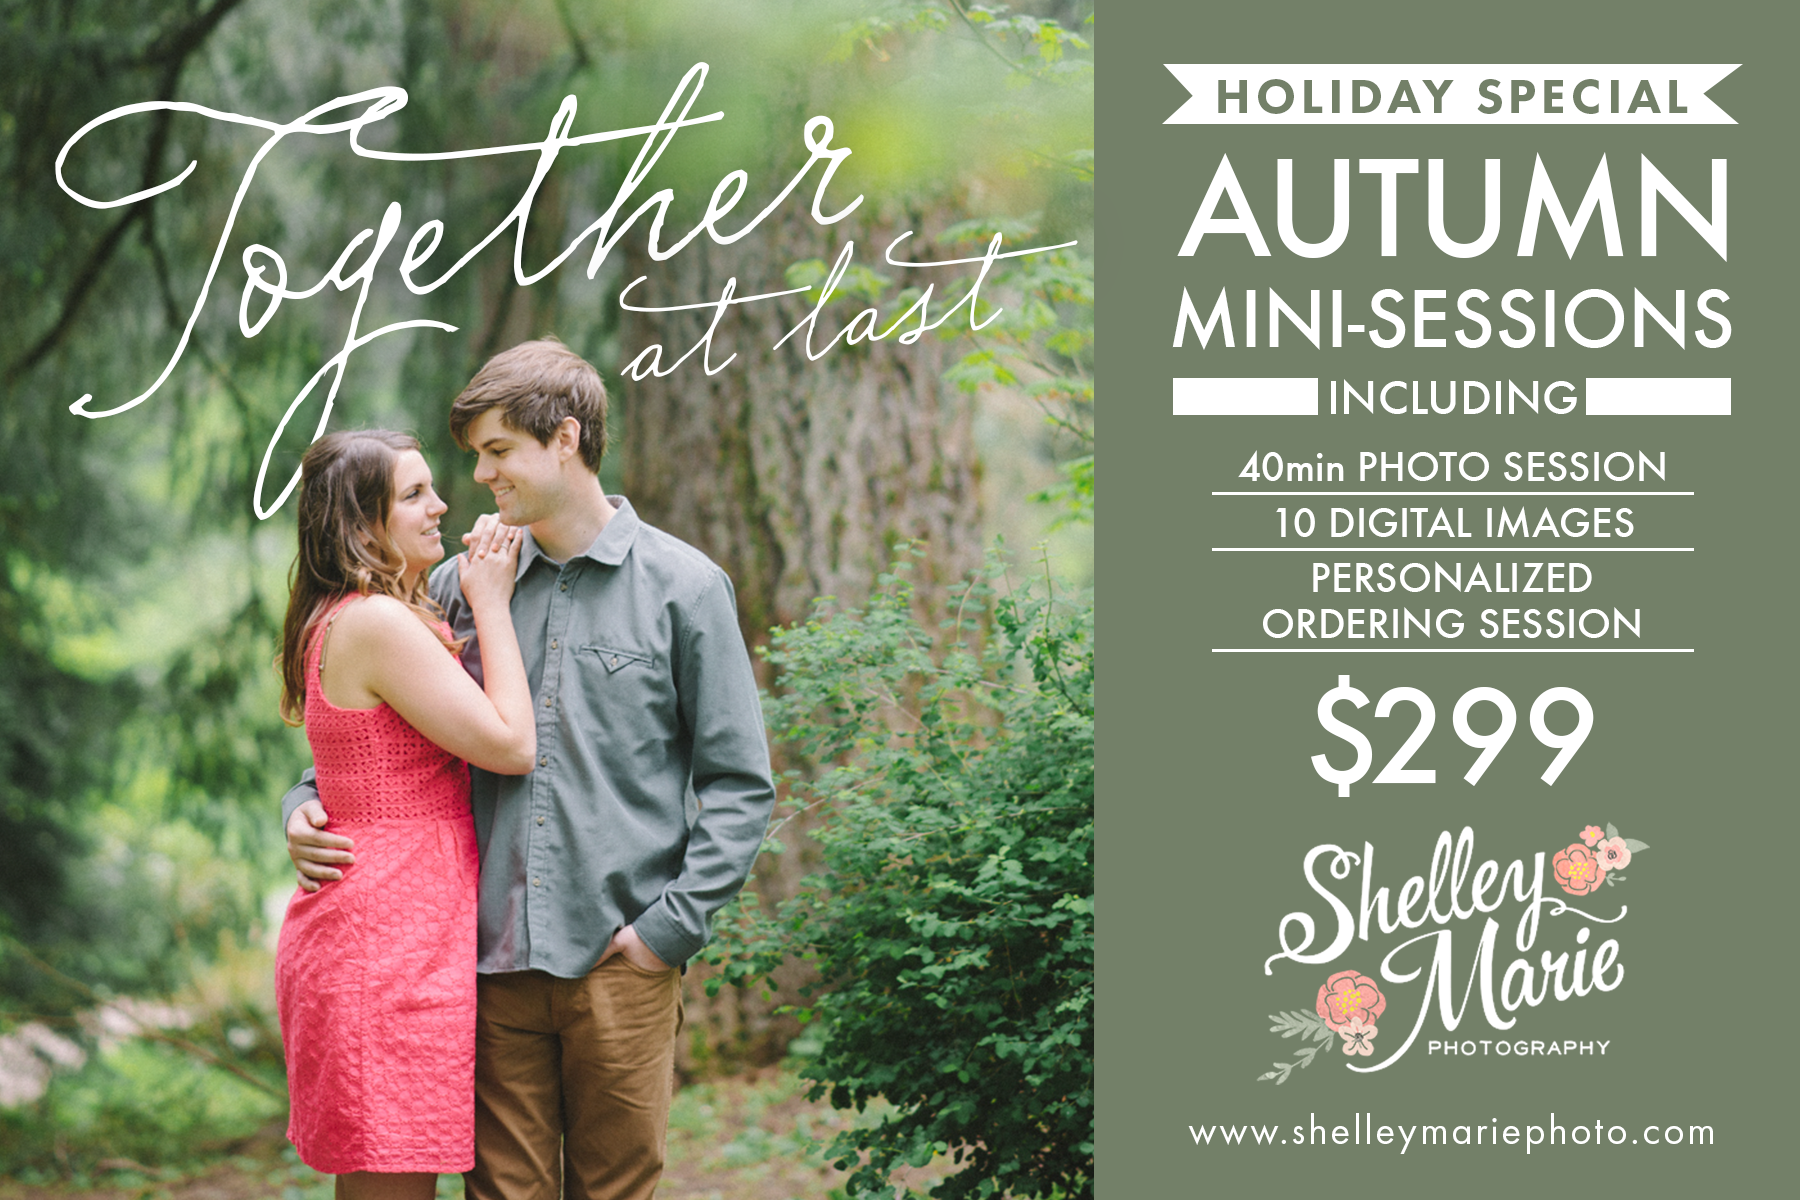 *Mini sessions are available for Family, Couples, Maternity, and Senior Portrait sessions.